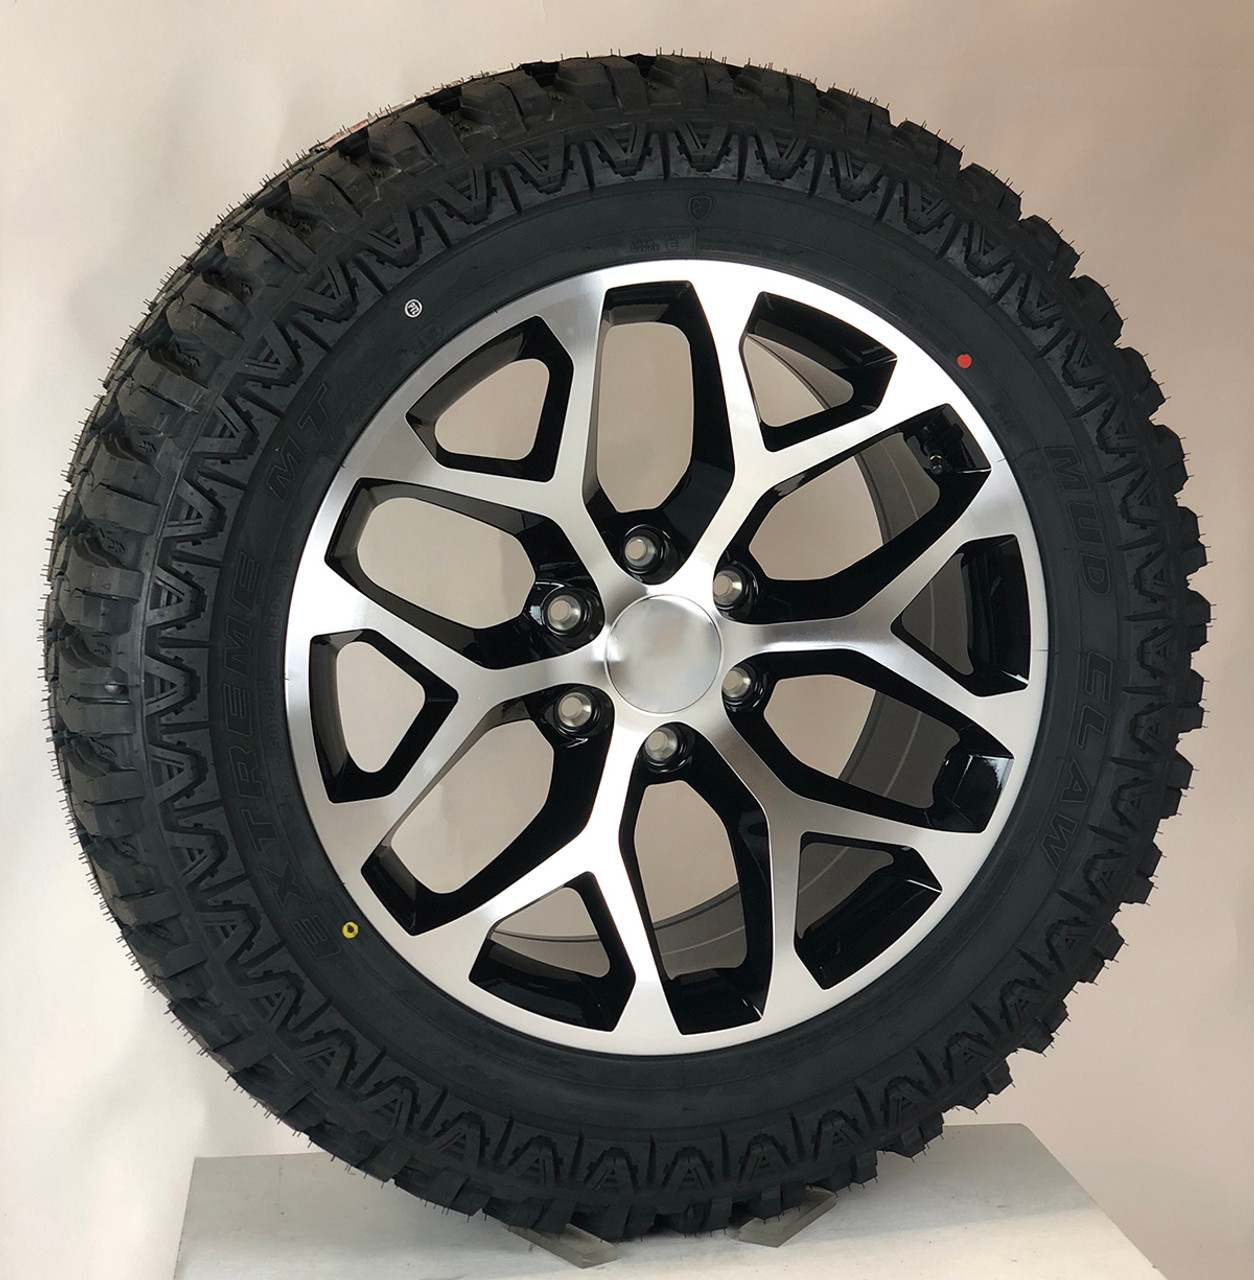 20 Gmc Wheels >> Black And Machine 20 Snowflake Wheels With Mudclaw M T 33 12 50 20 Tires For Gmc Sierra Yukon Denali New Set Of 4